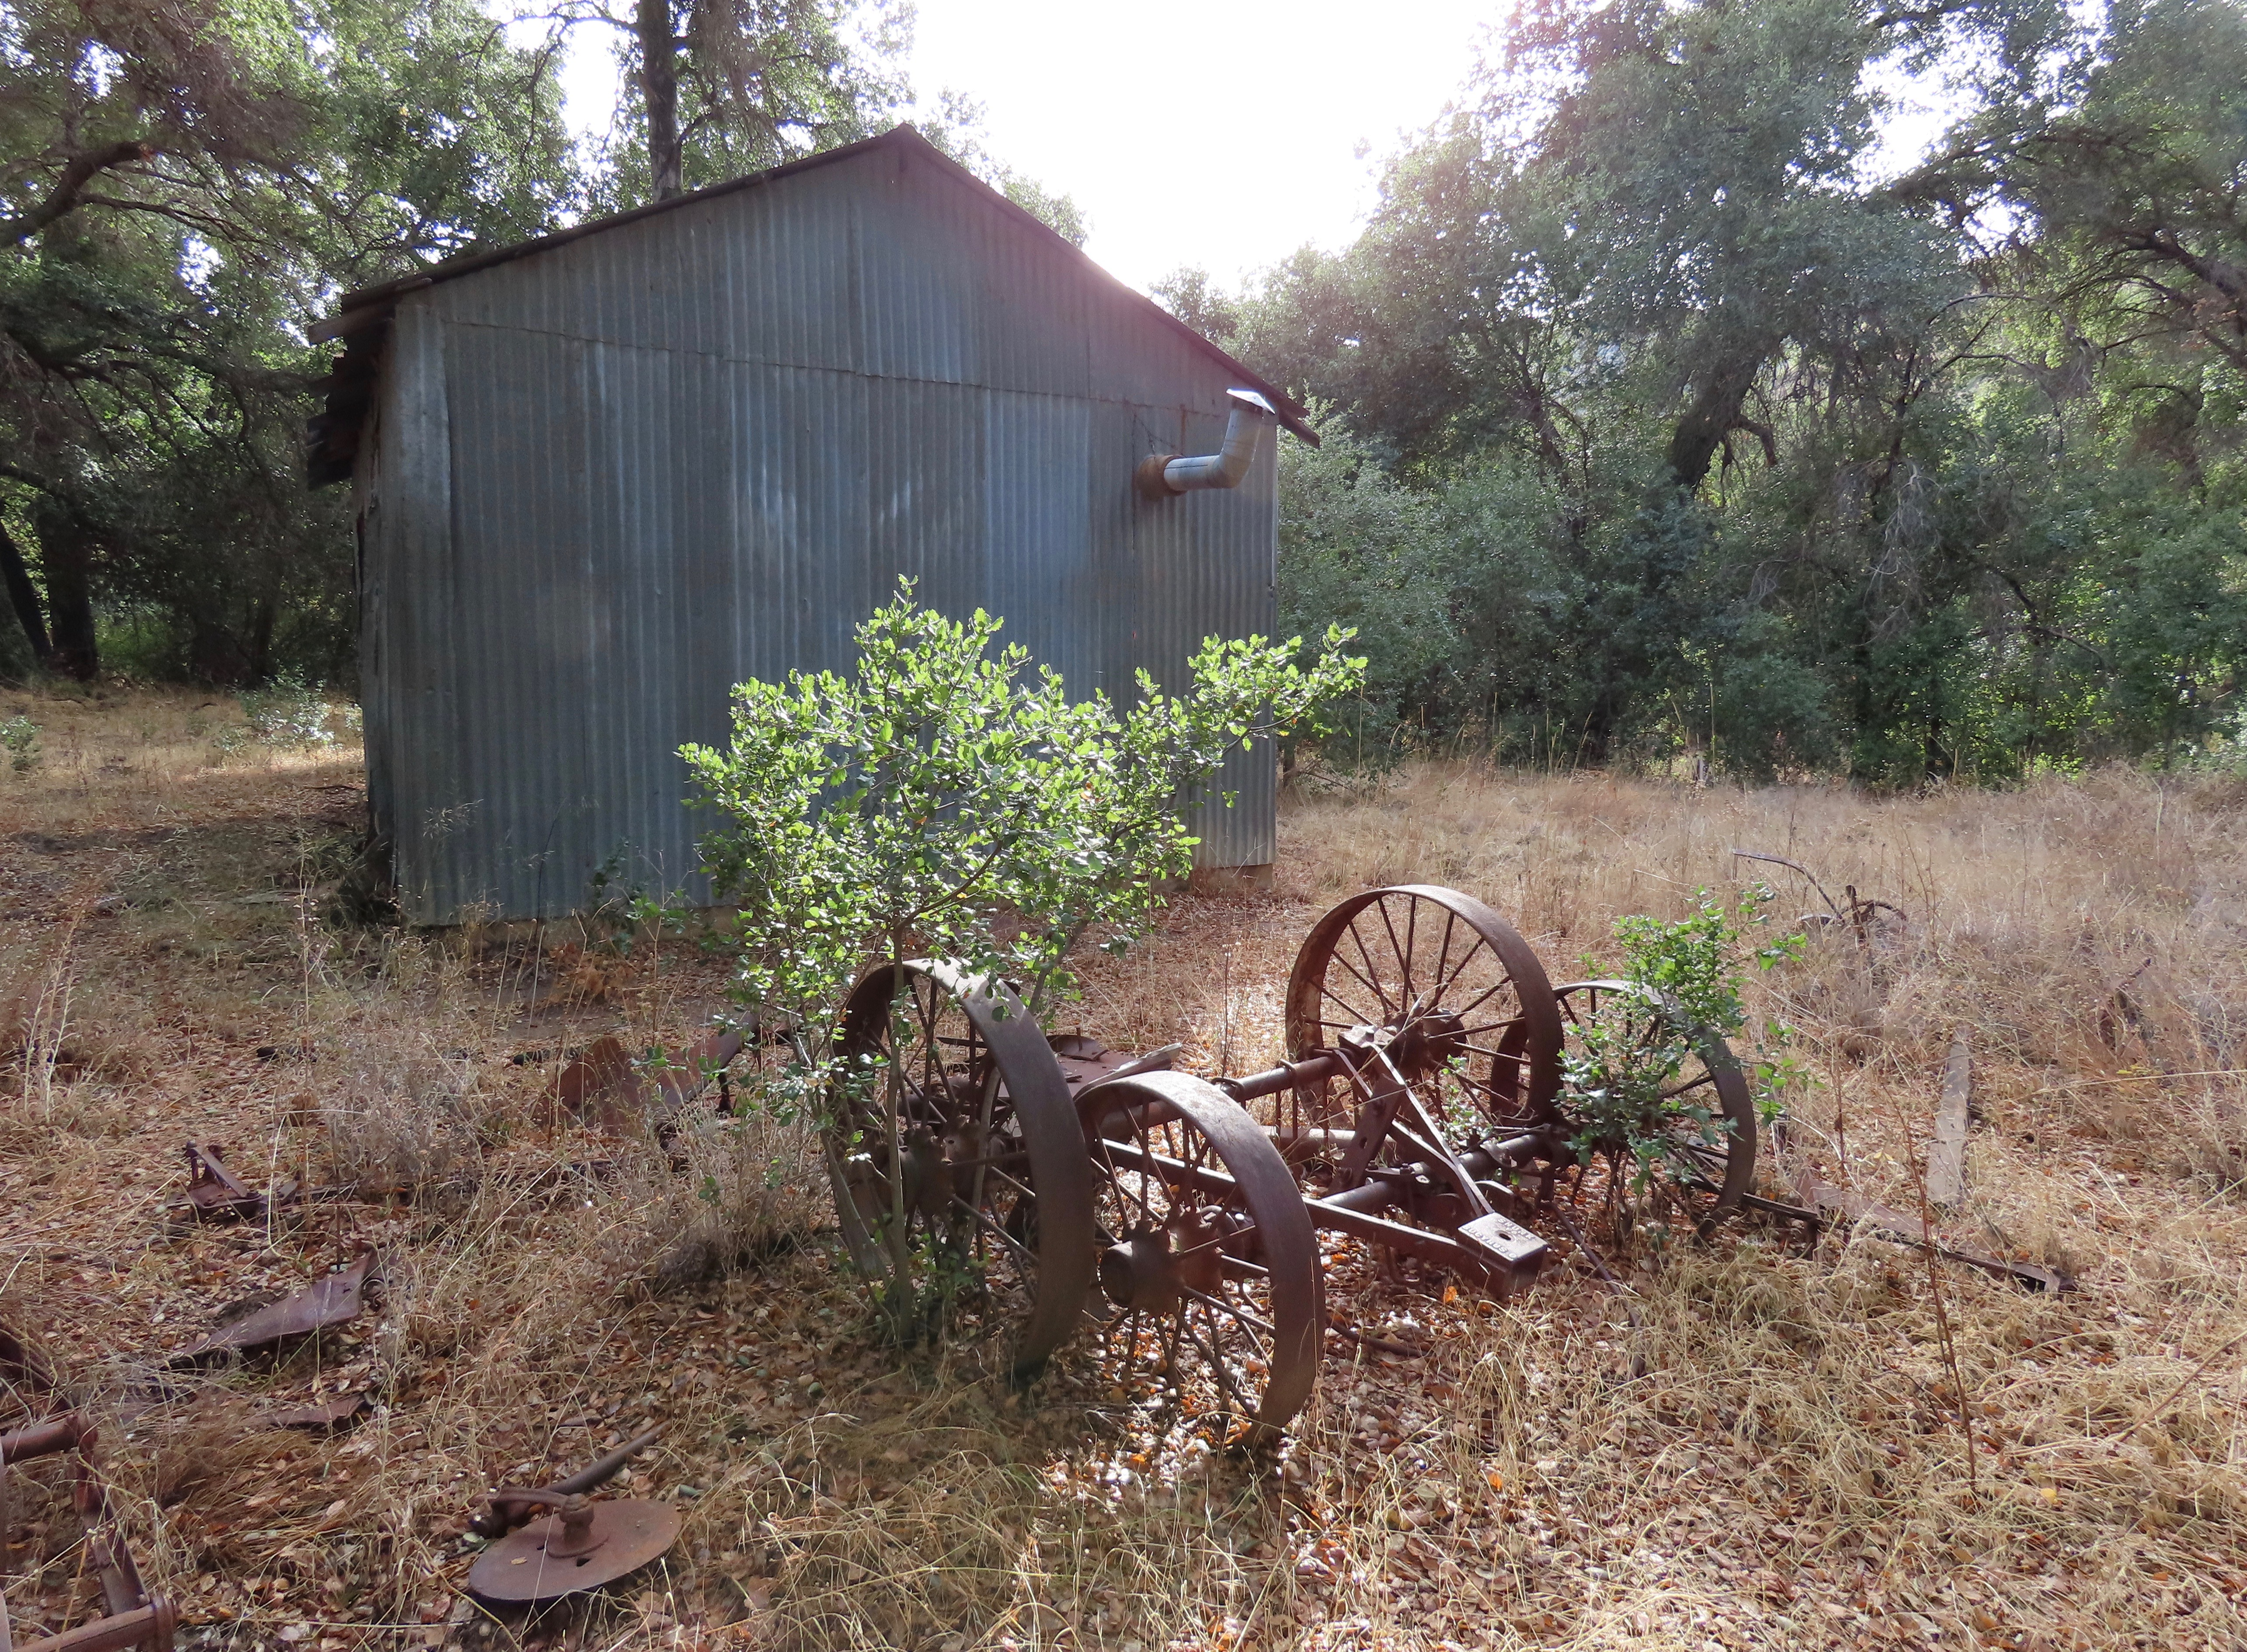 old farm equipment whitaker homestead pothole springs sespe wilderness los padres national forest